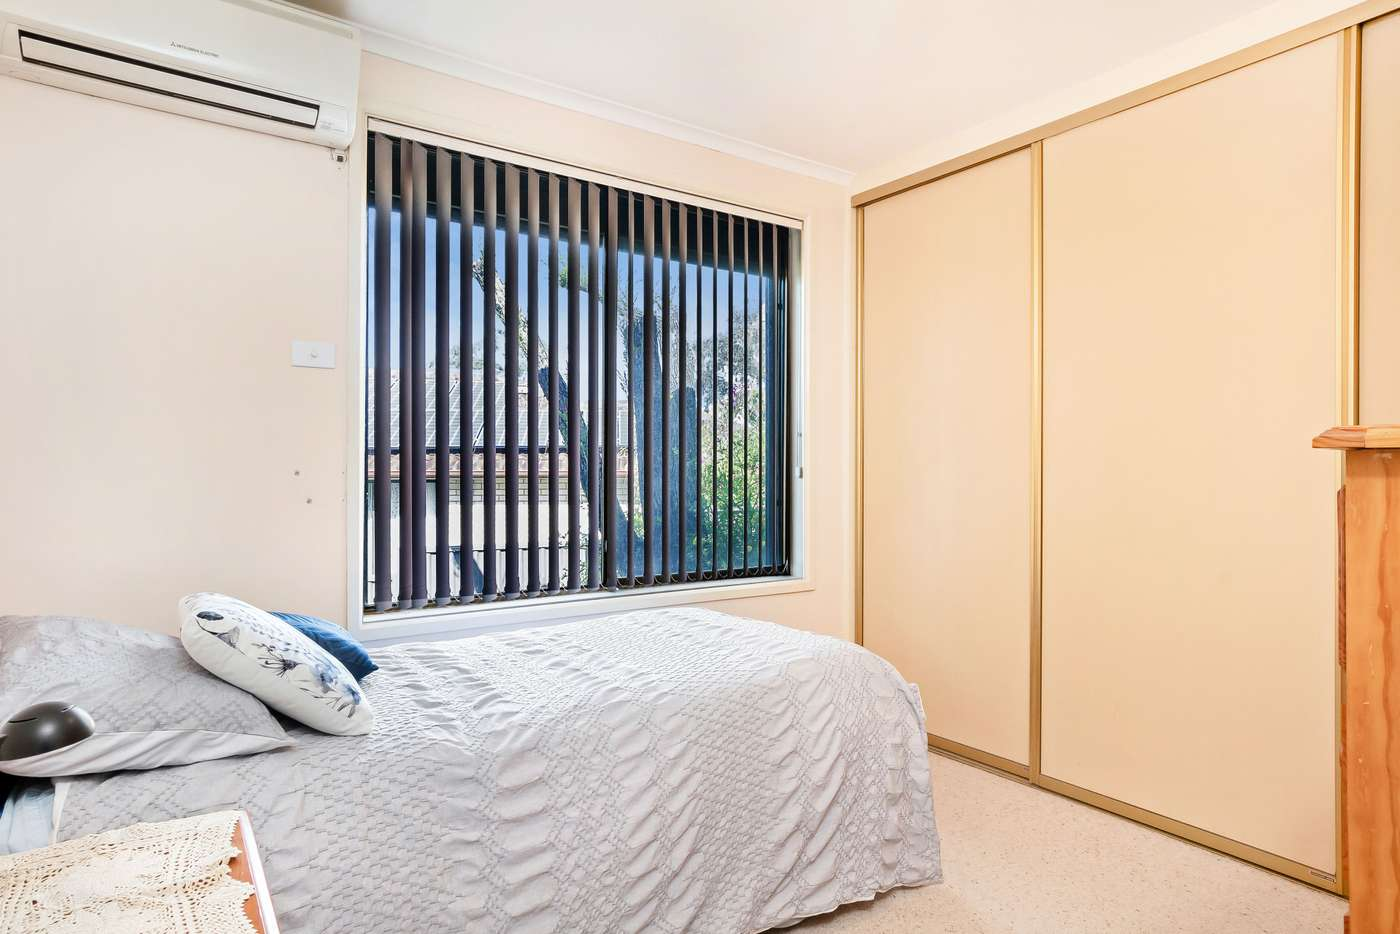 Fifth view of Homely house listing, 144 Chapel Lane, Baulkham Hills NSW 2153